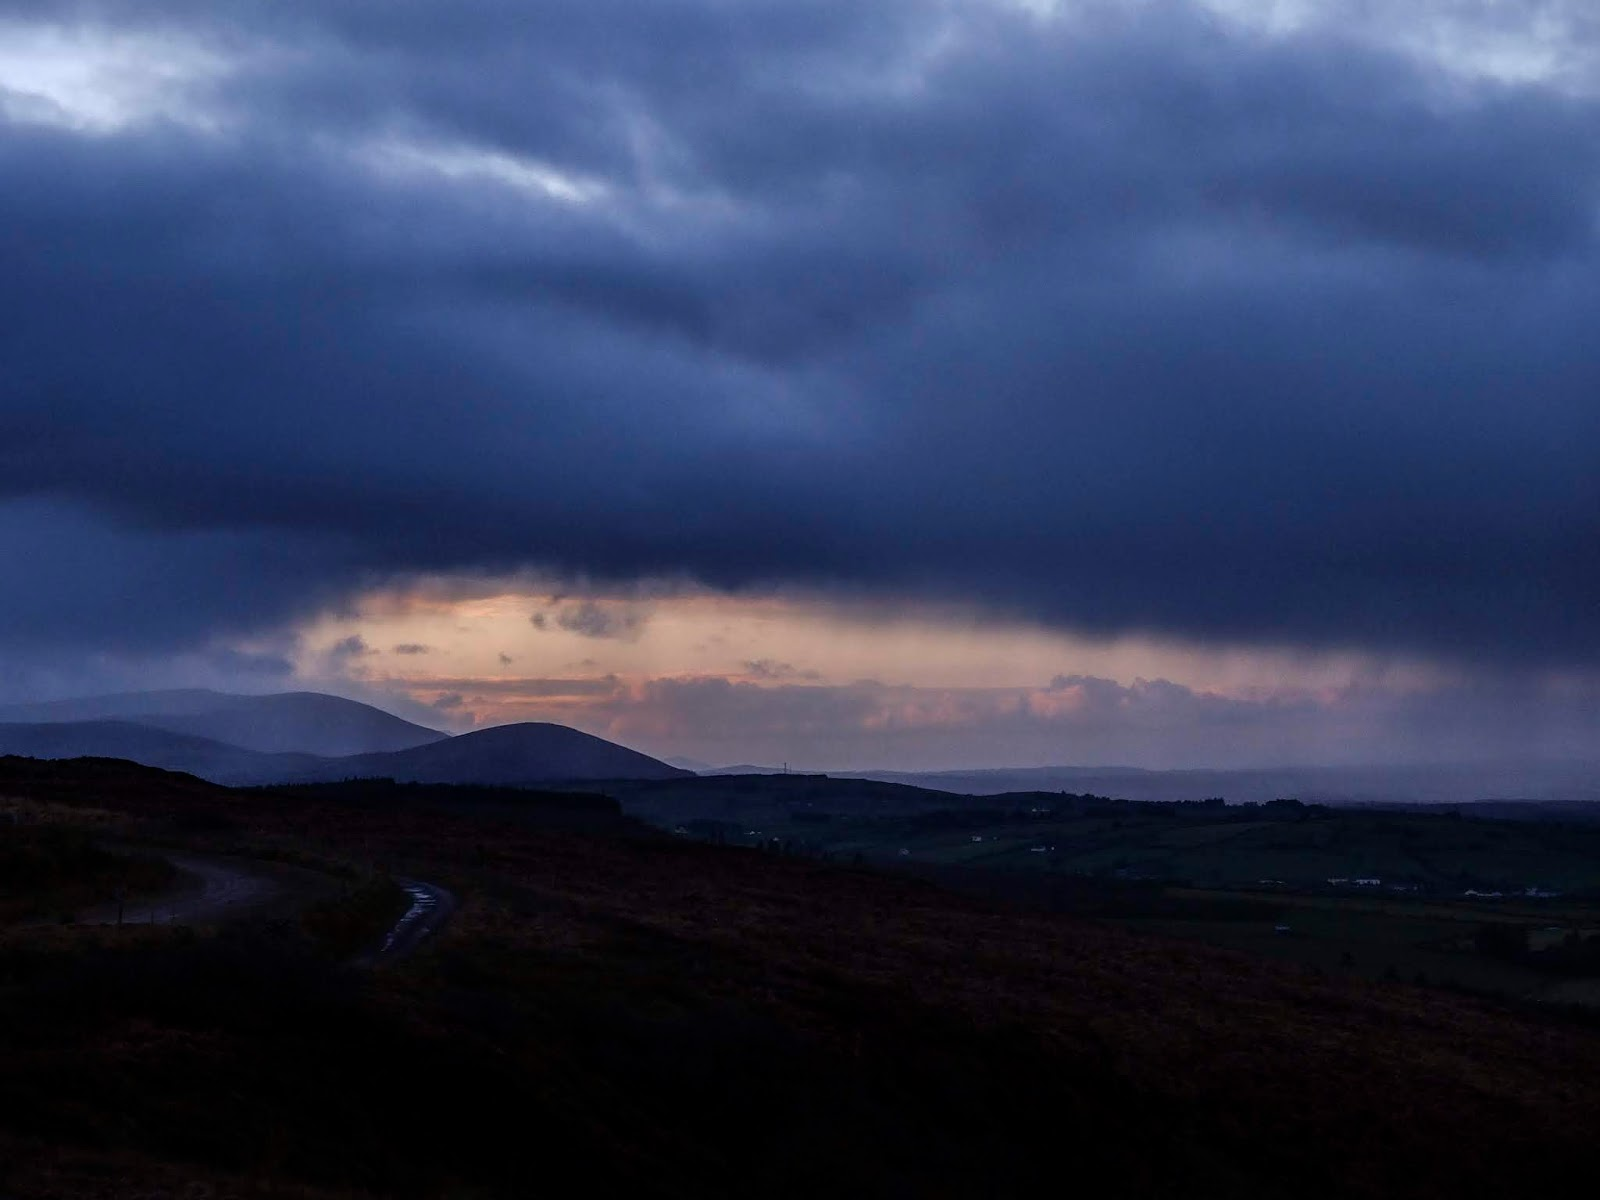 Rain clouds in a valley in the Boggeragh Mountains with sunset clouds in the distance.